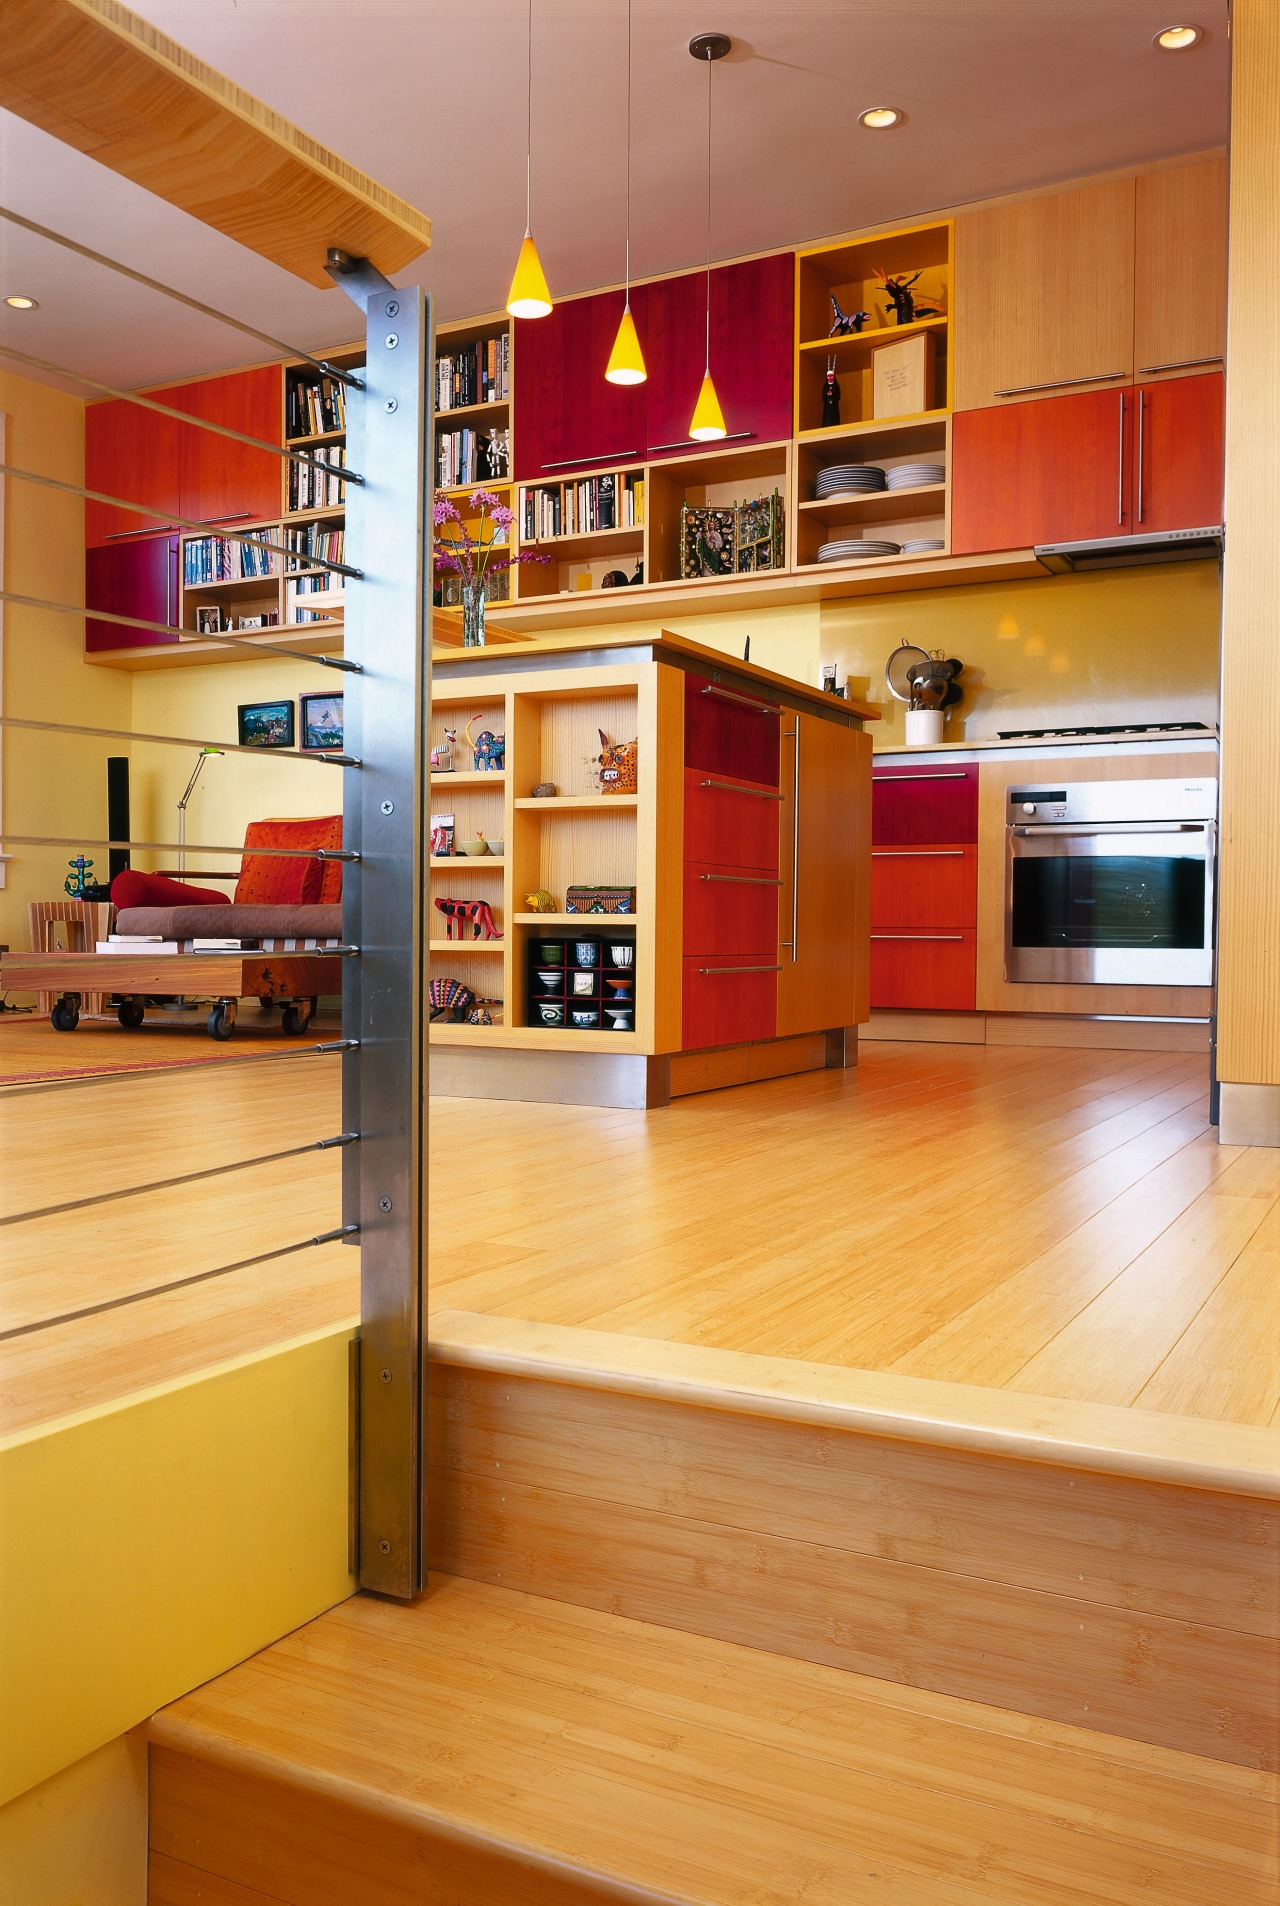 A view of the kitchen area from the bookcase, cabinetry, floor, flooring, furniture, hardwood, interior design, kitchen, shelf, shelving, wood, wood flooring, orange, brown